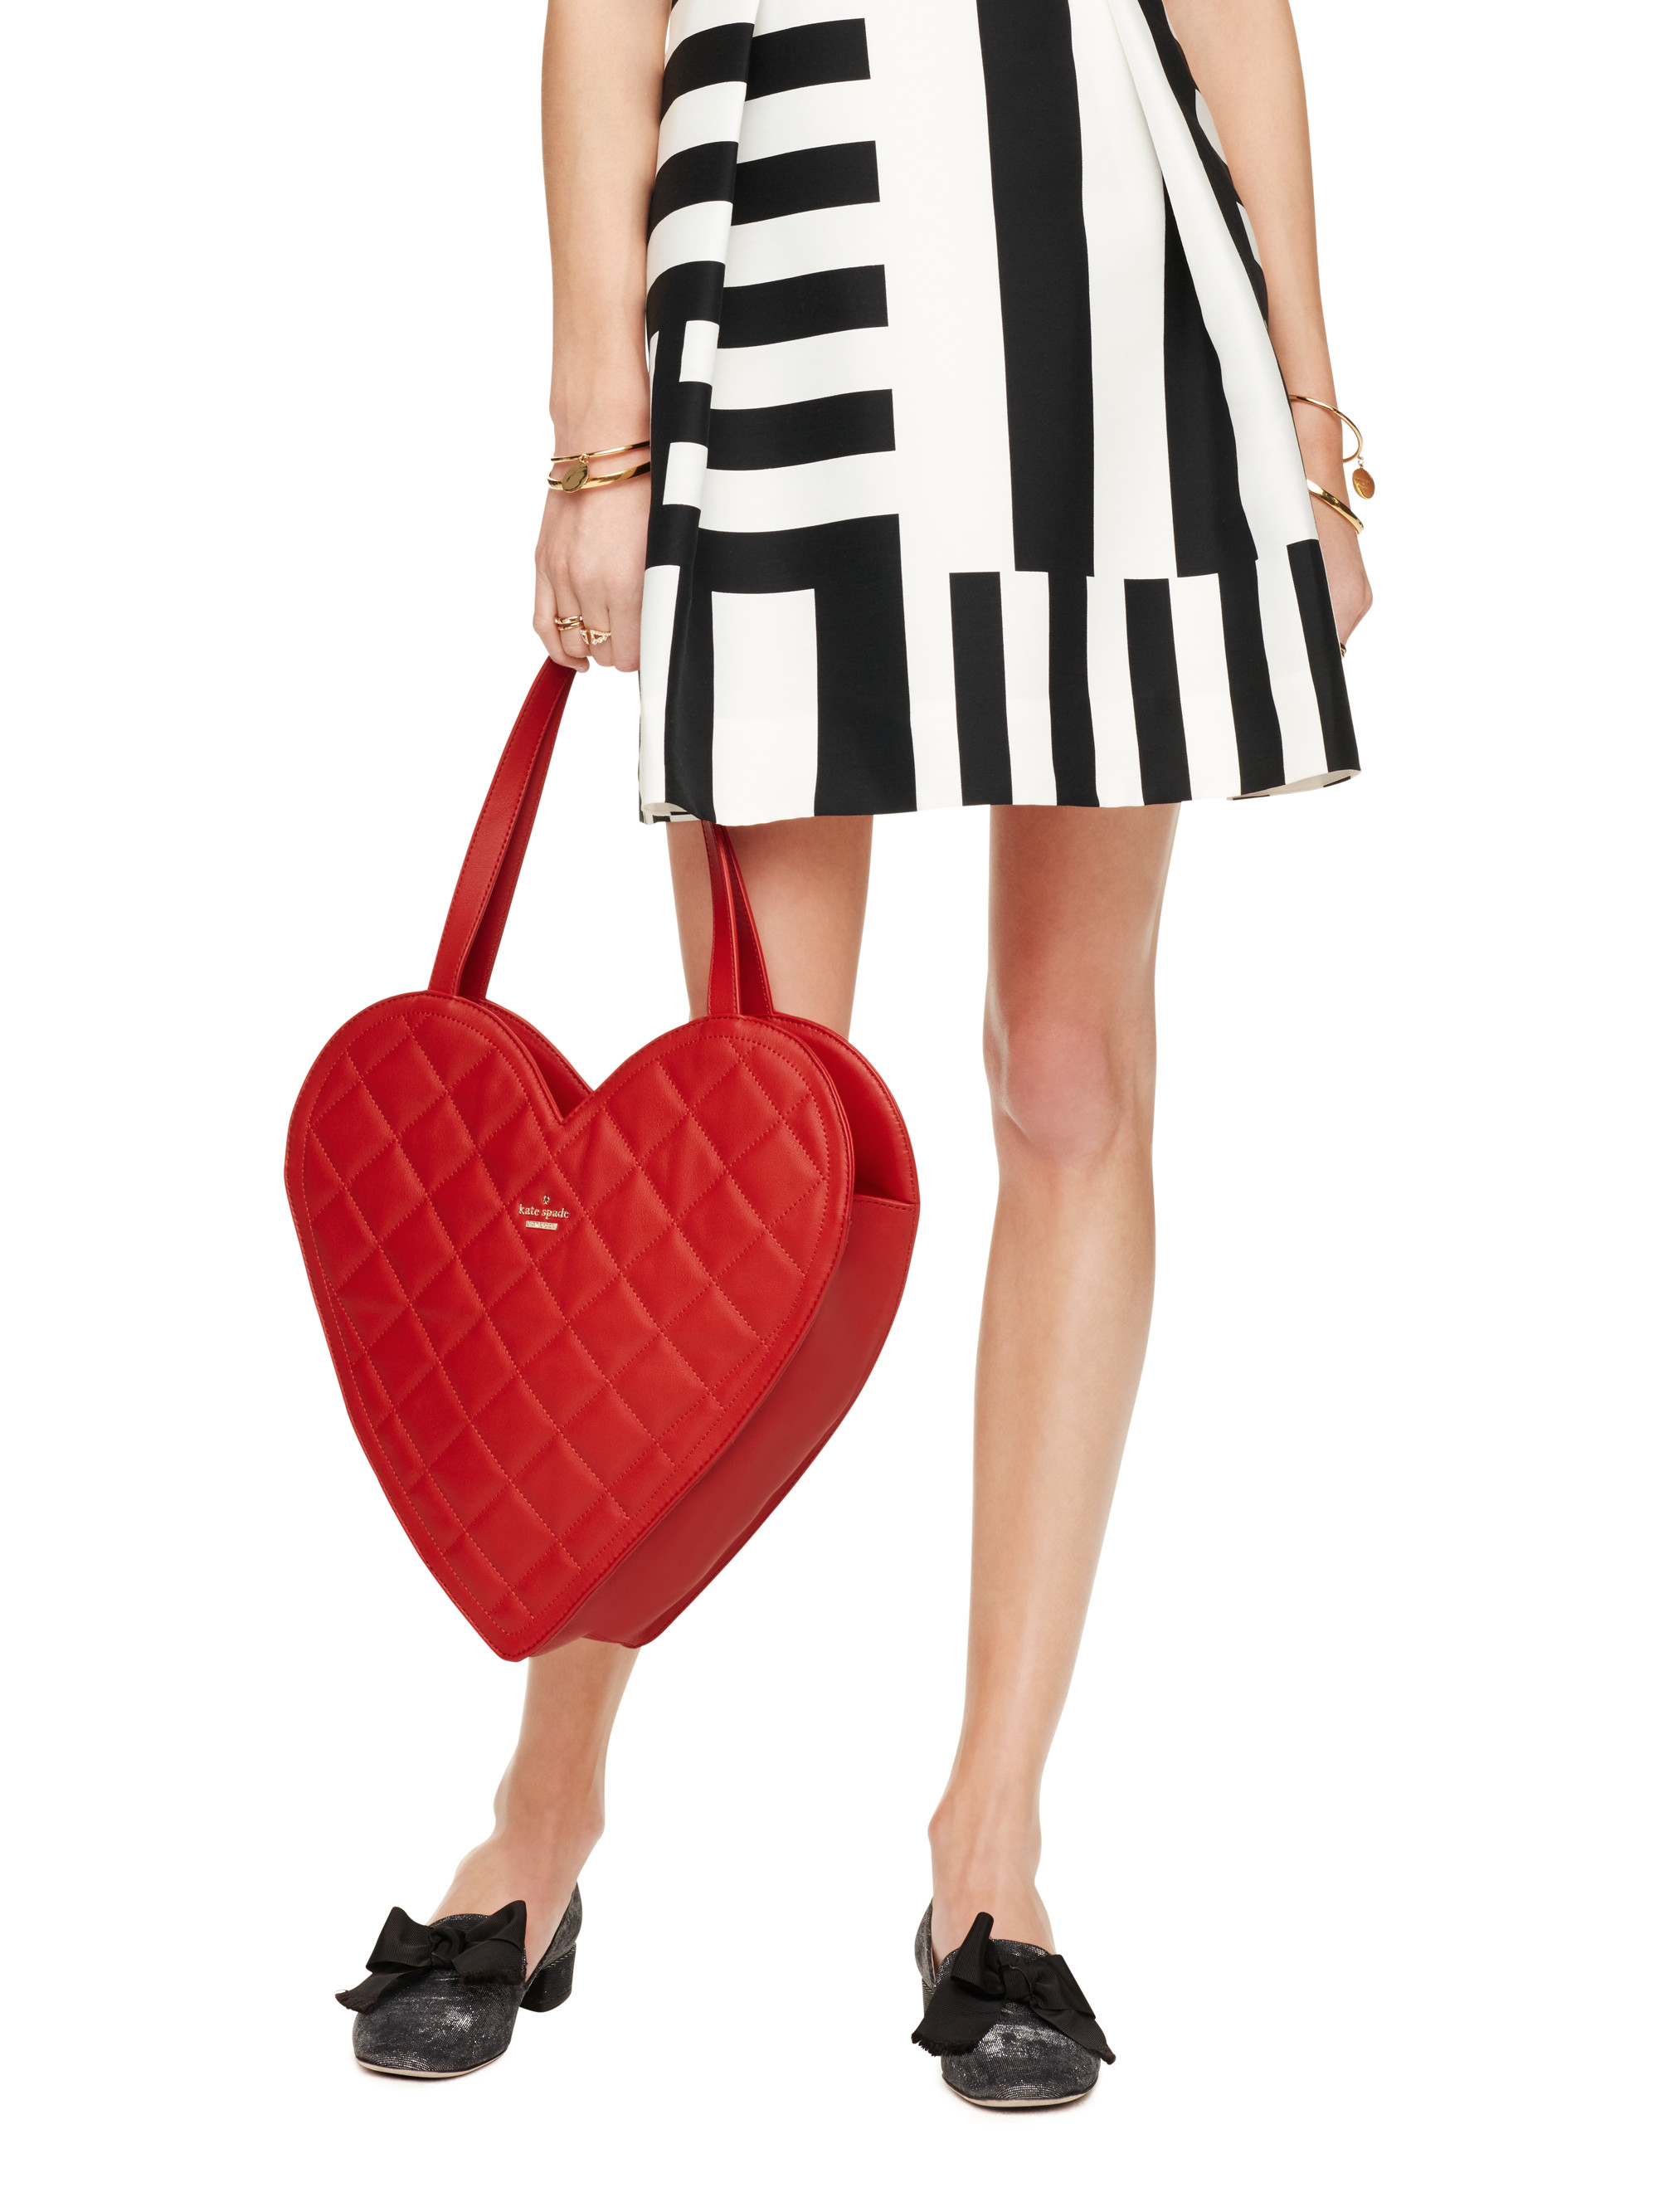 Kate Spade New York Secret Admirer Quilted Heart Tote In